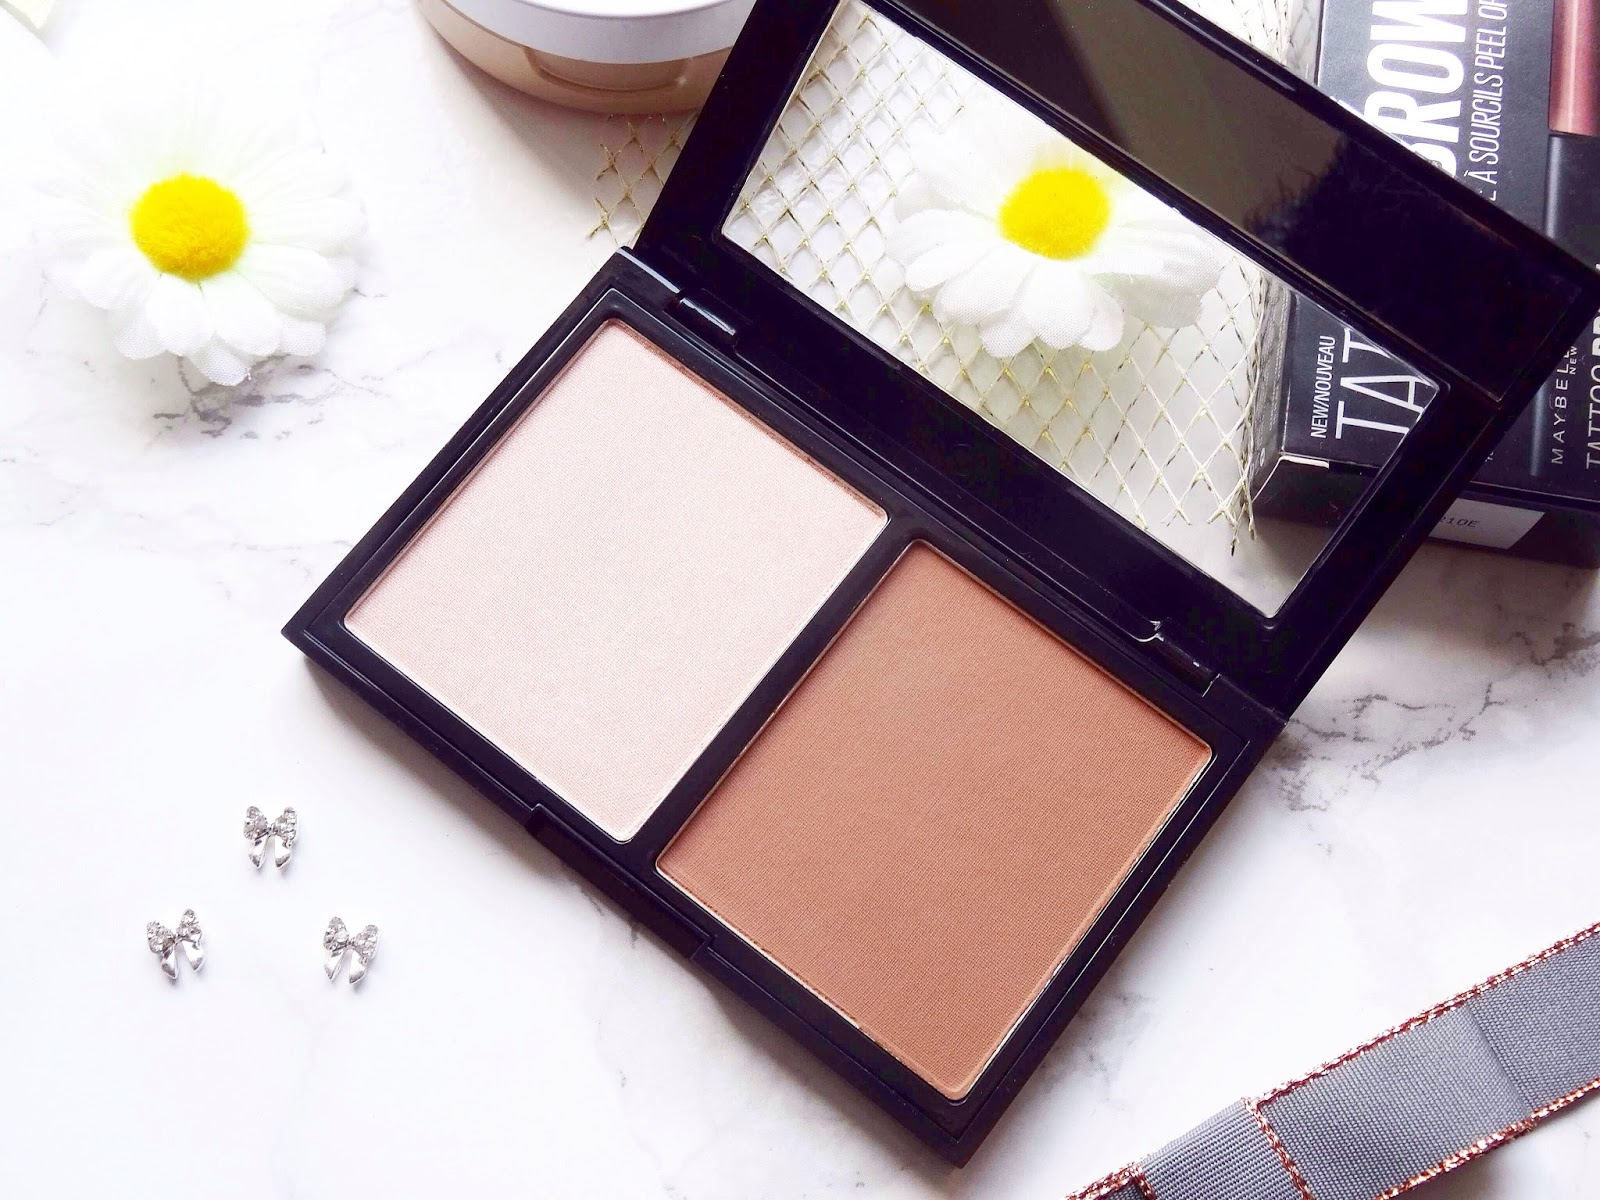 Collection Highlight and Sculpt Contour Kit Review